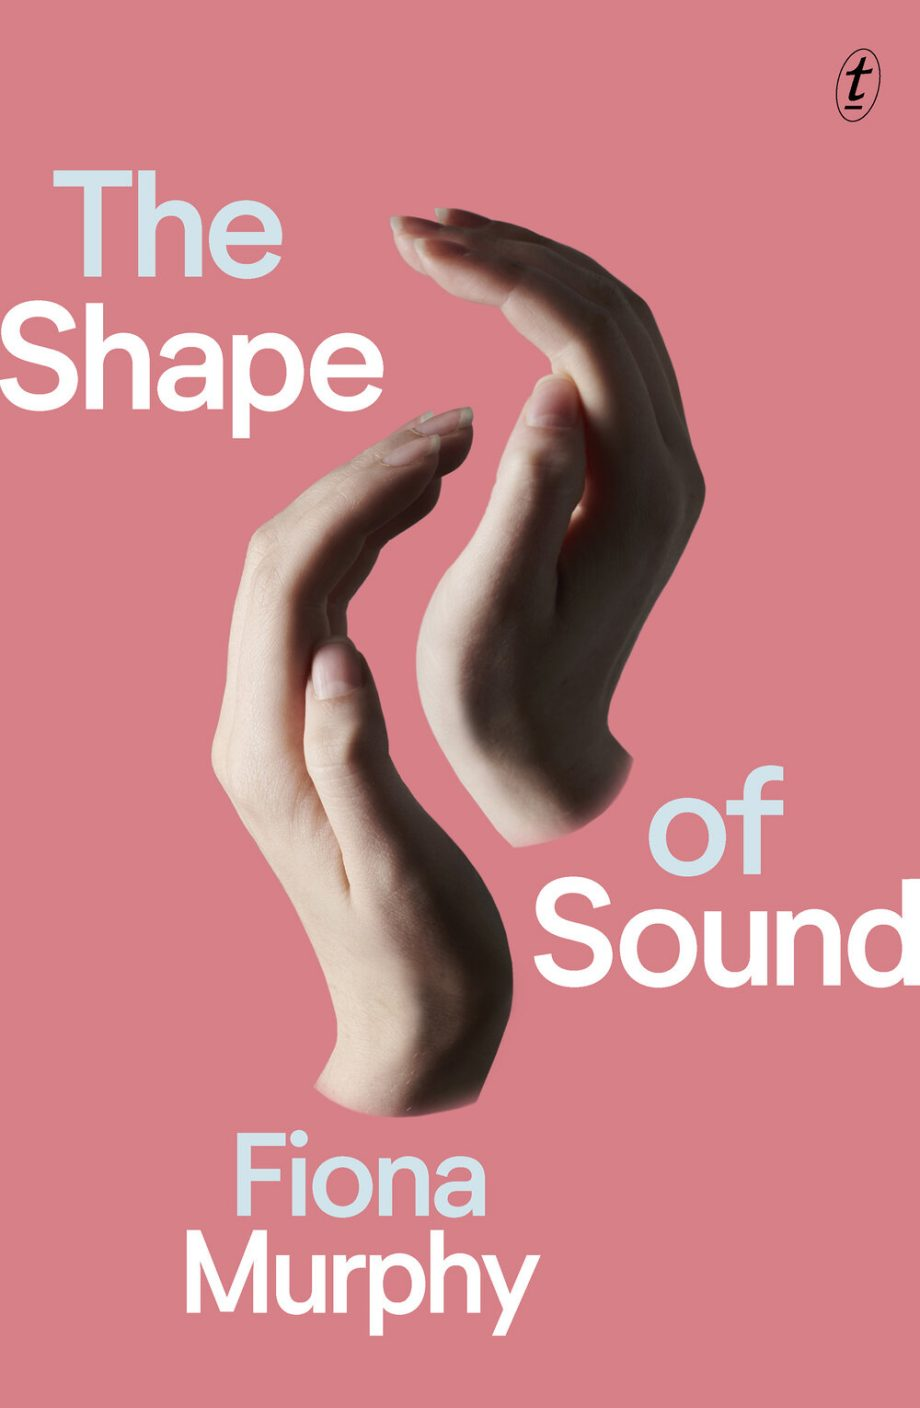 Book cover image: 2 cupped hands facing each other on a pink background